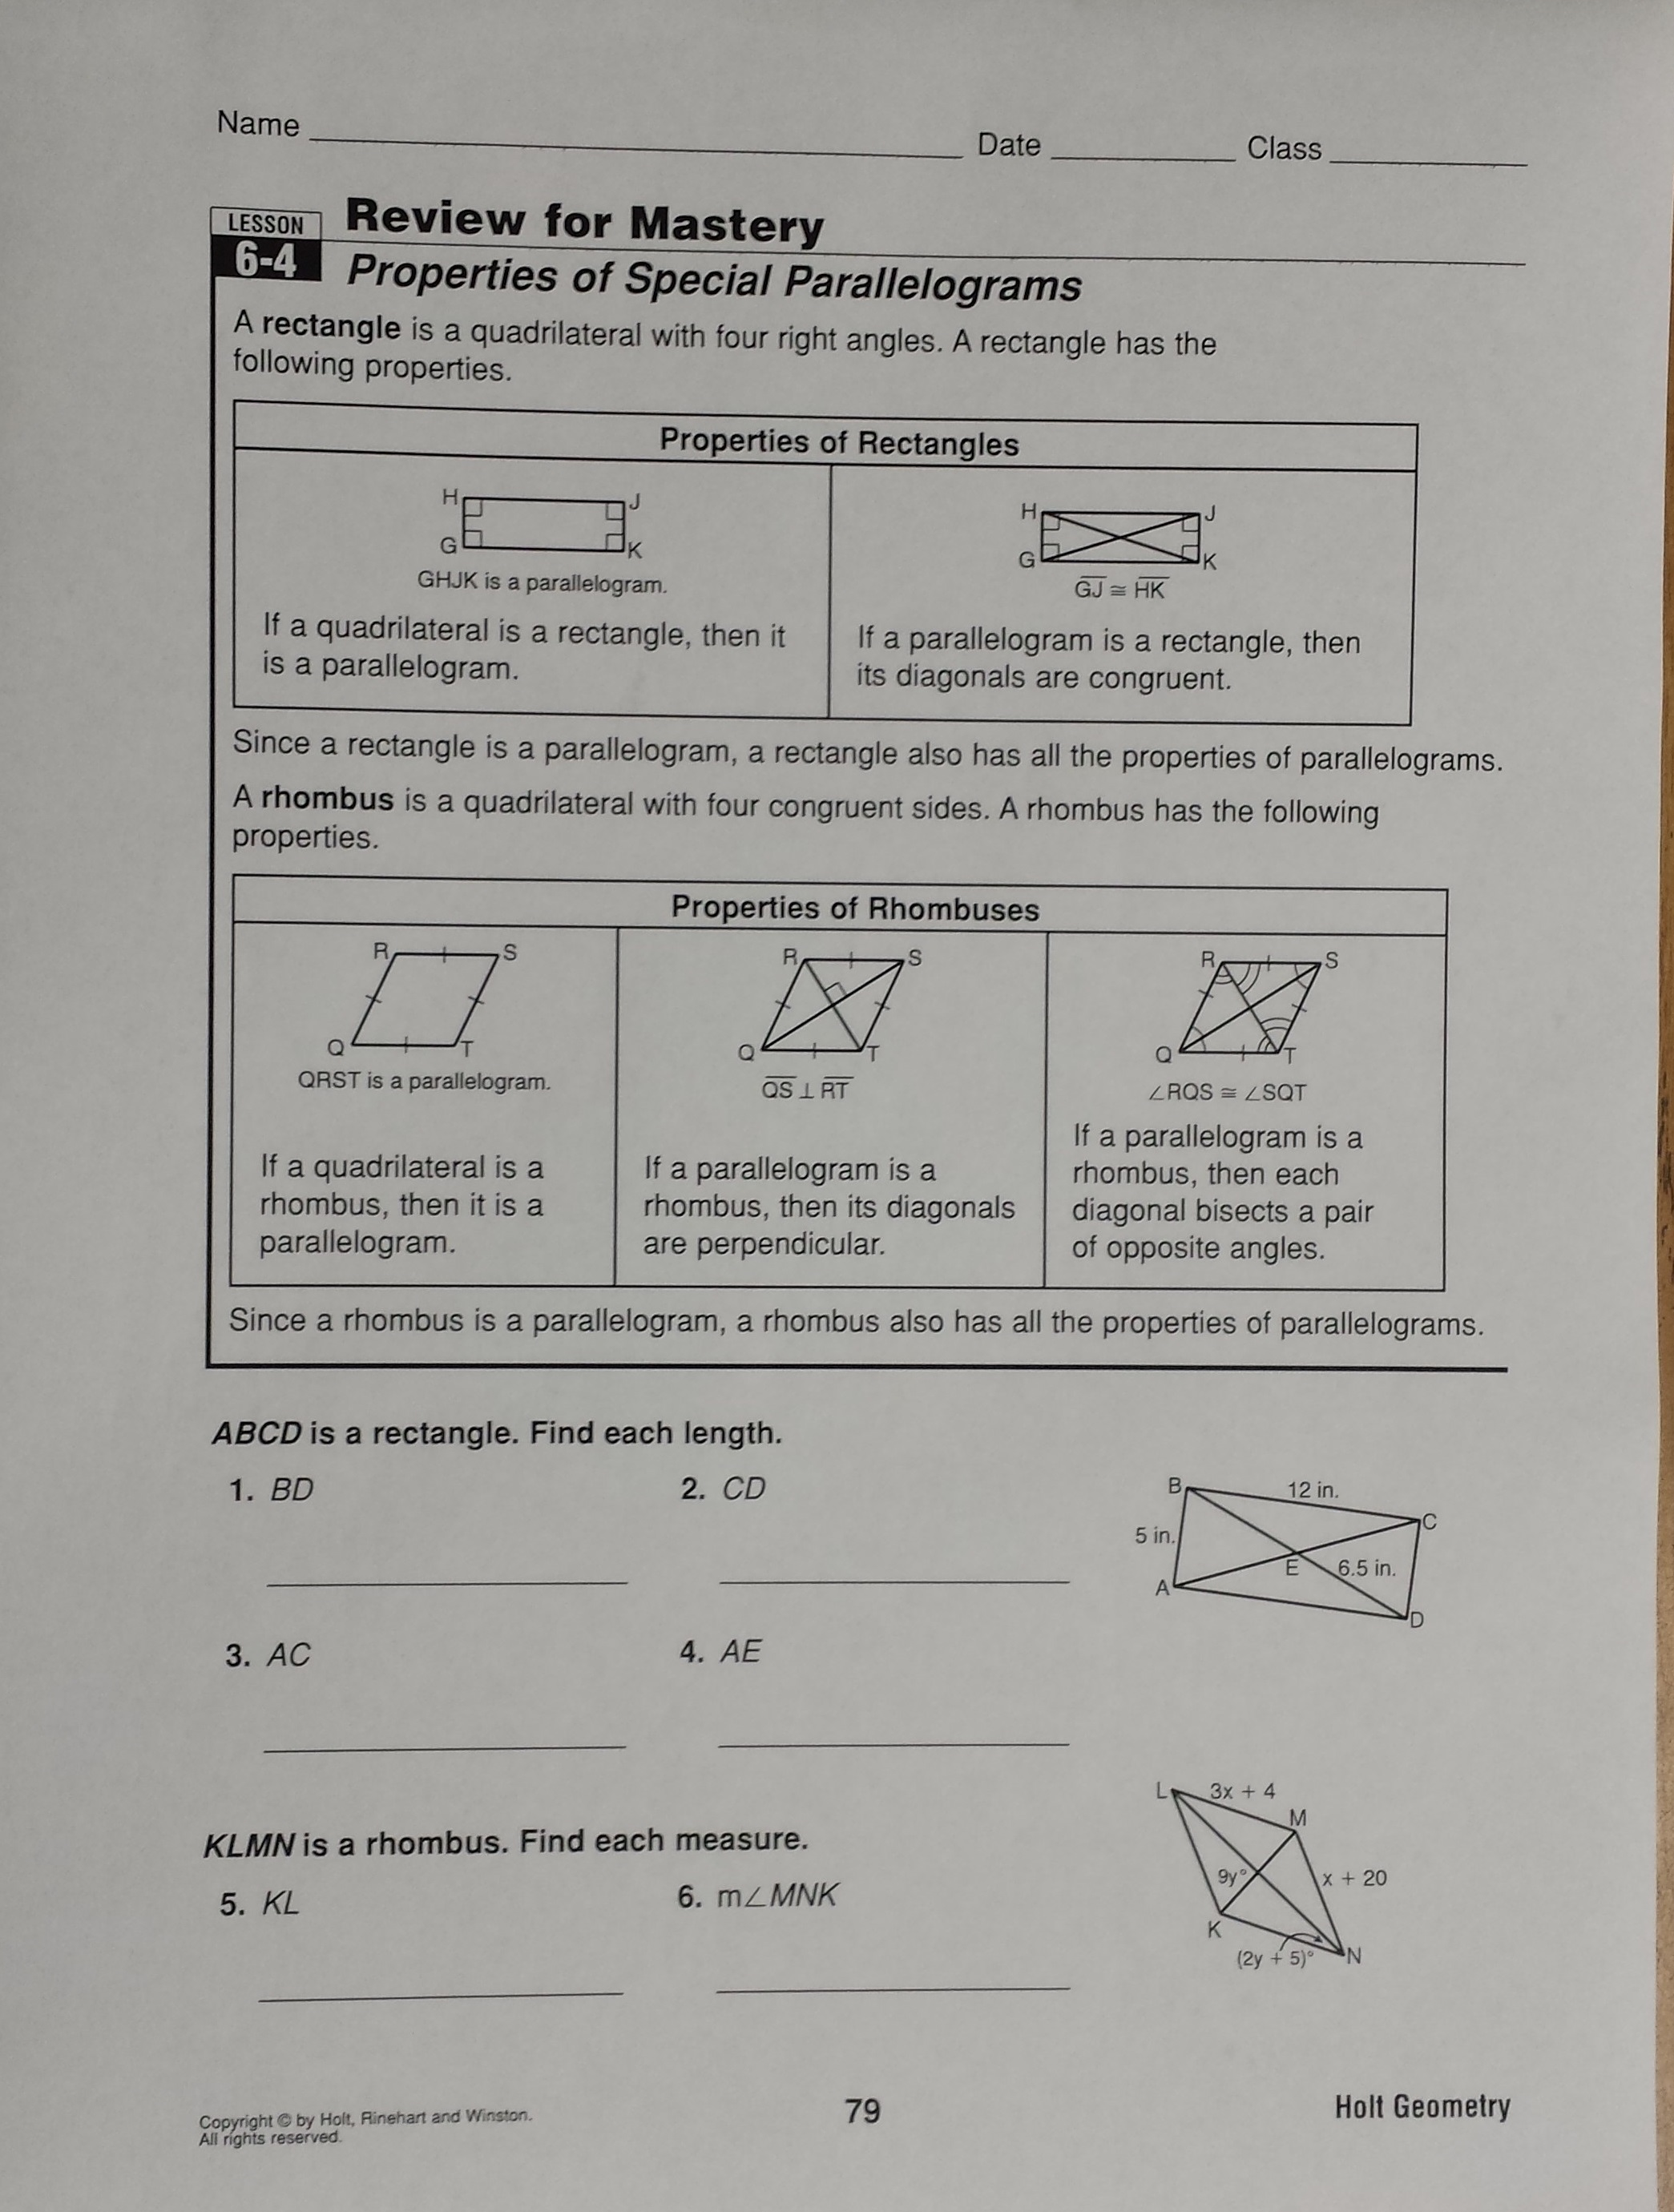 worksheet Kite And Trapezoid Properties Worksheet mrs garnet at pvphs 6 notes properties of kites and trapezoids page 1 2 warmup writing assignment turned in